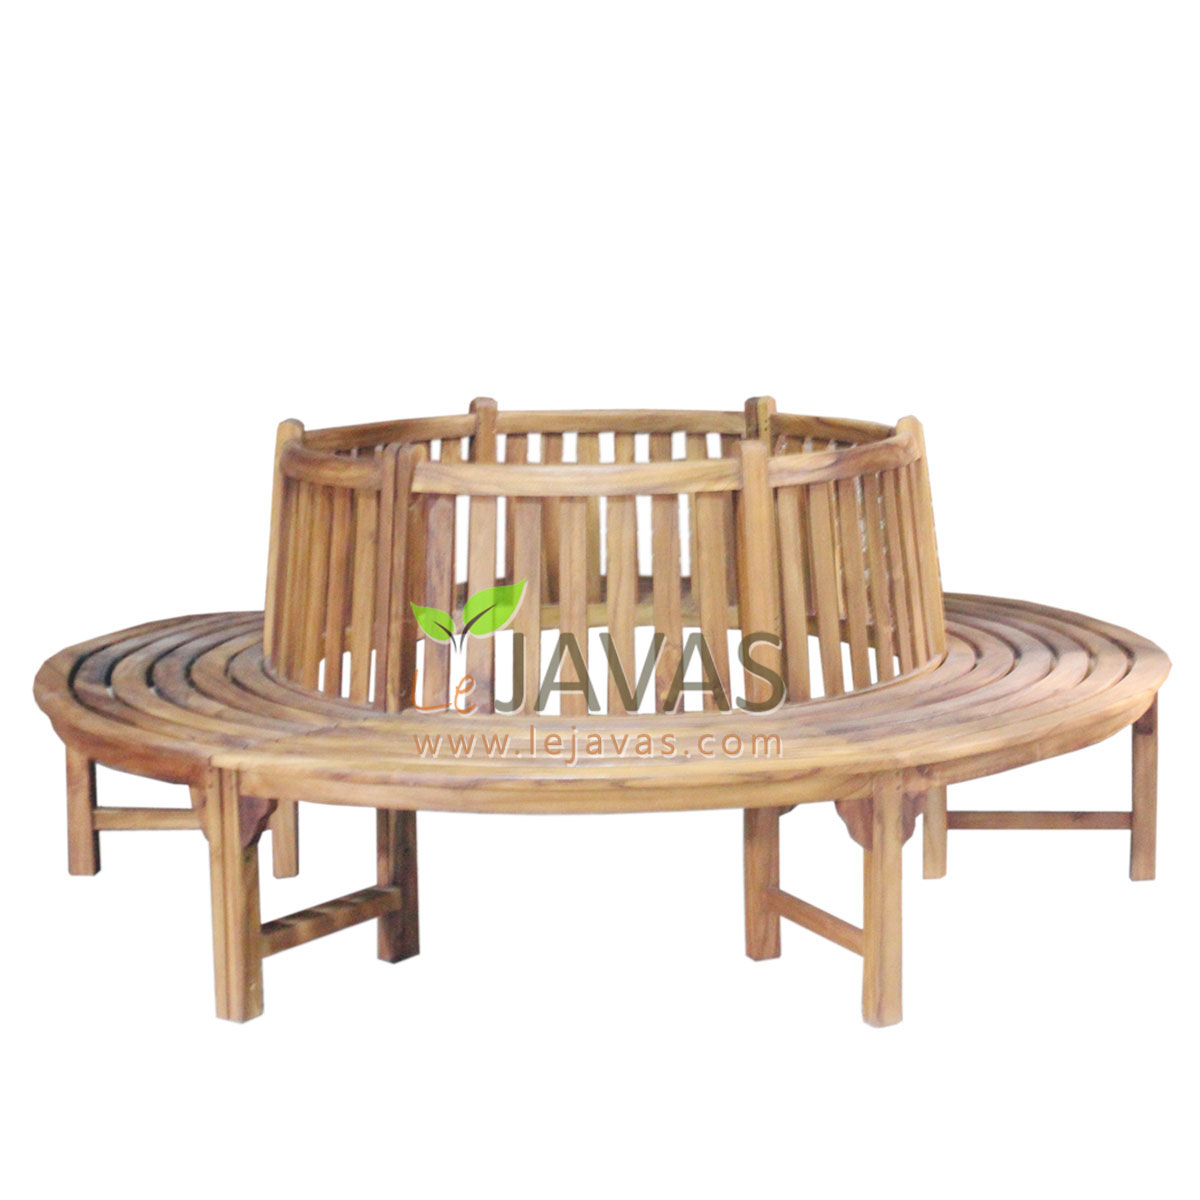 Teak Patio Round Tree Bench Le Javas Furniture Patio Furniture